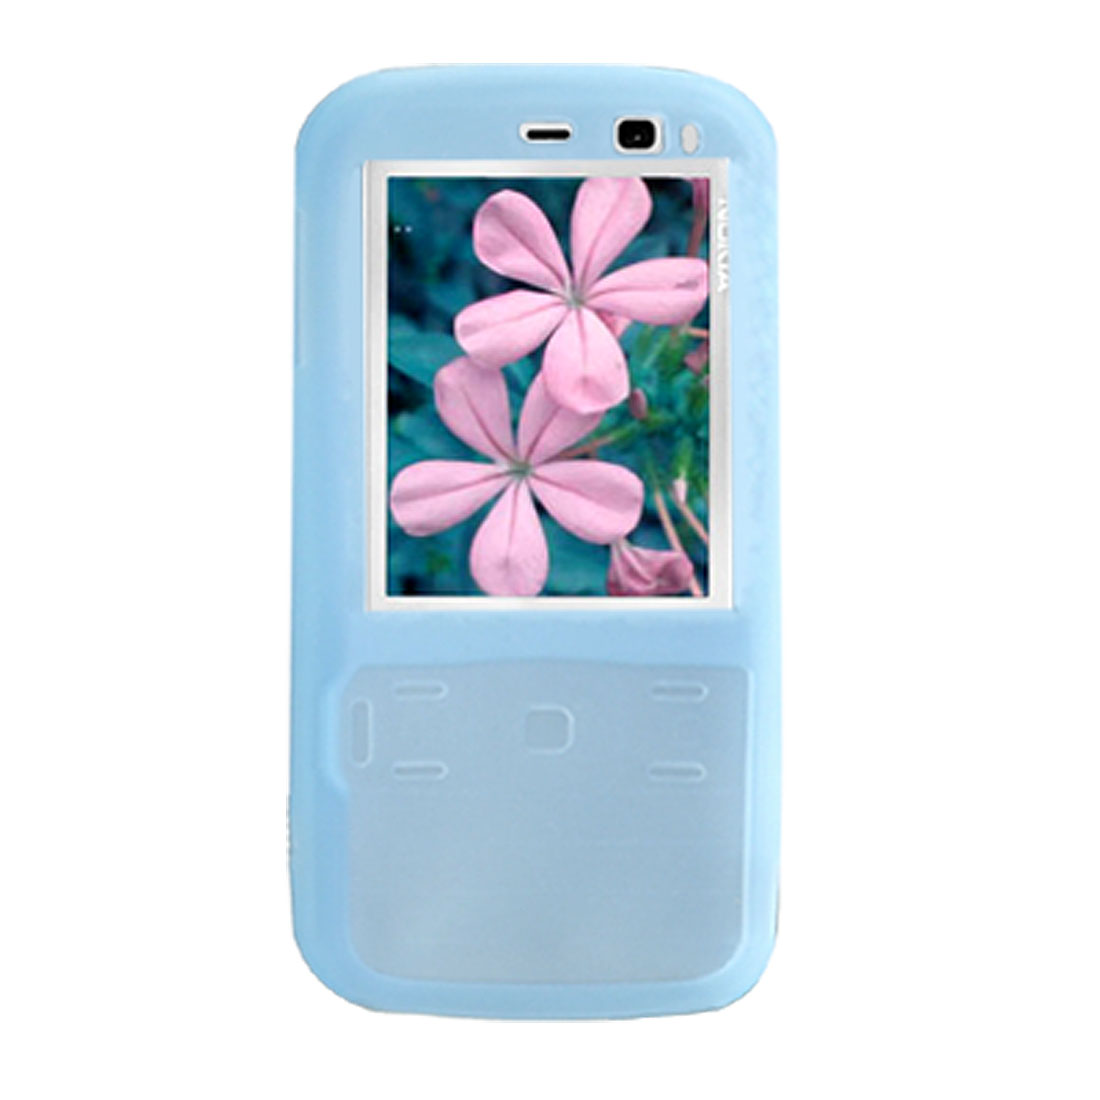 Smooth Silicone Skin Case Protector for Nokia N79 Light Blue